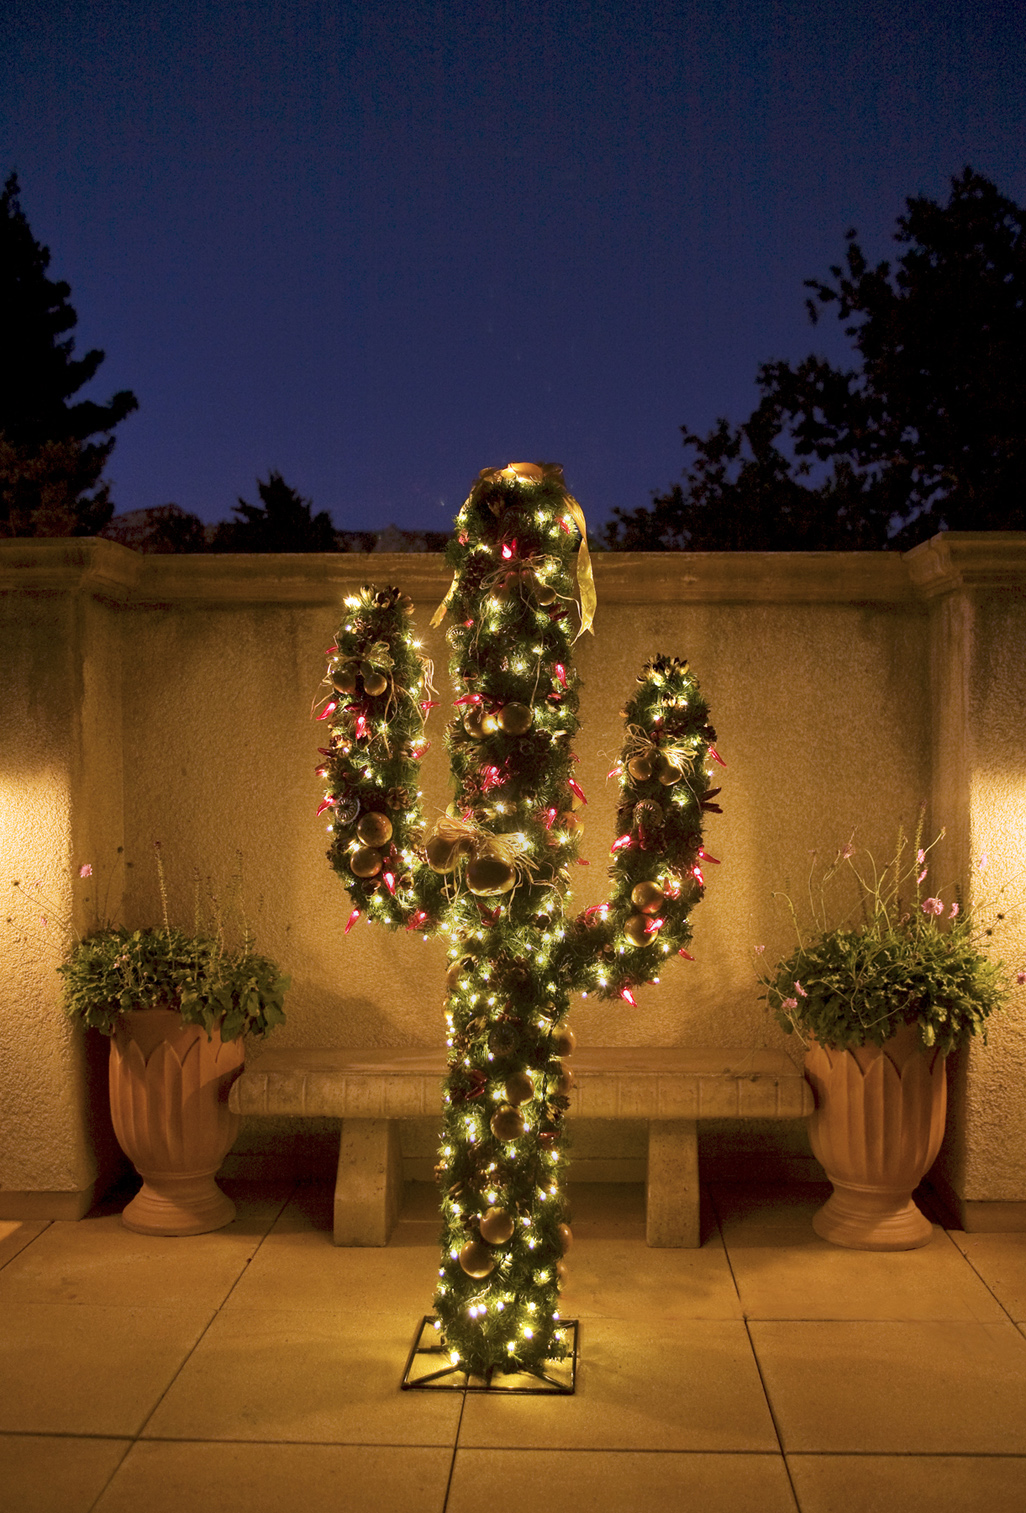 Christmas Tree In The Desert.Tlaqepaque Sedona Cactus Christmas Tree Fake Christmasy